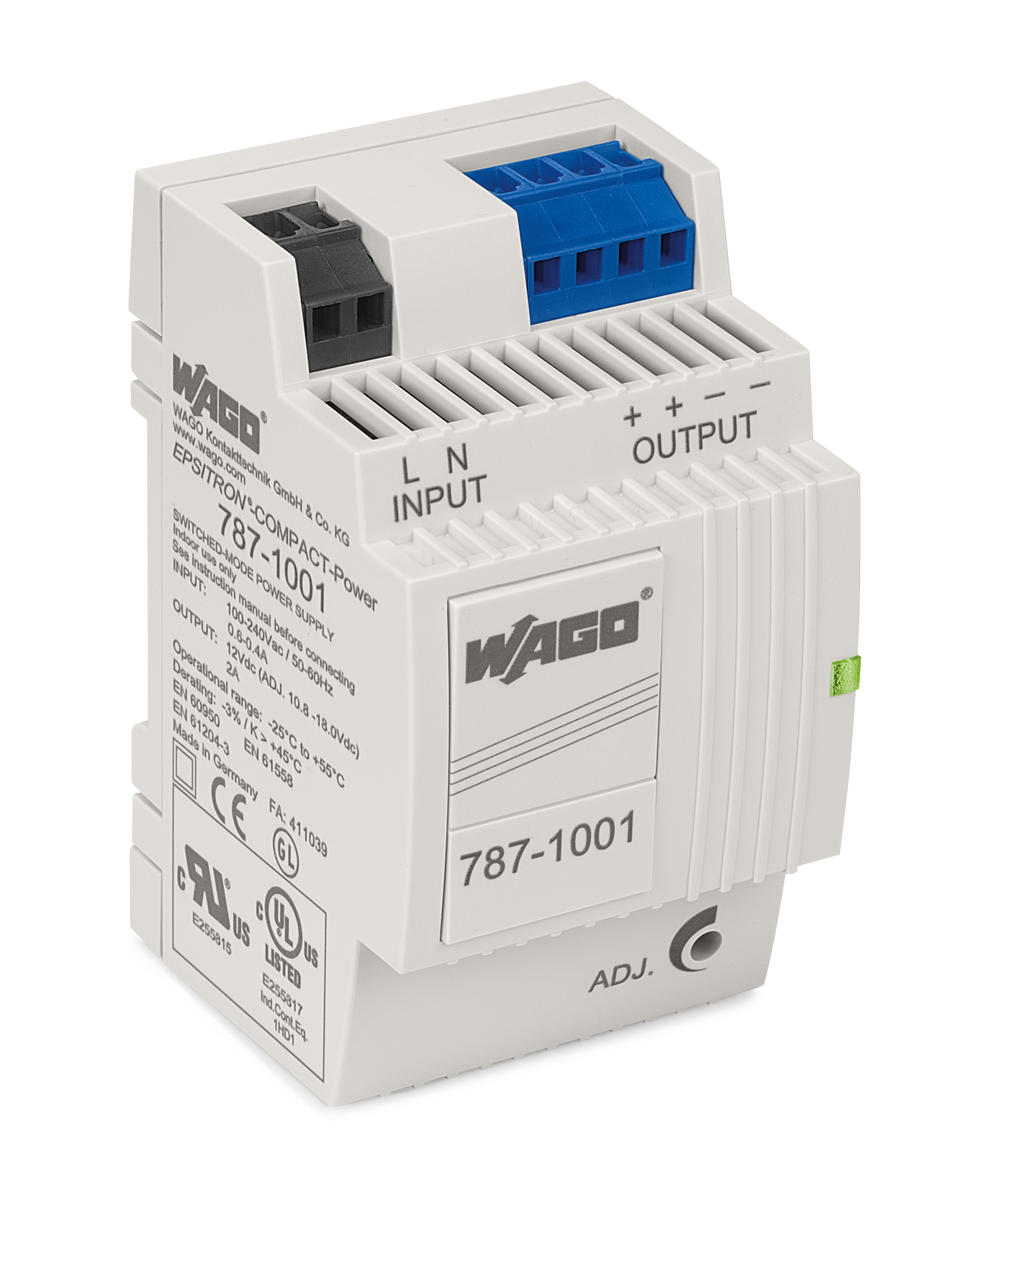 Wago Epsitron Compact Power Supply 787 1001 Vdc For 2 A Circuit Single Phase Output Voltage 12